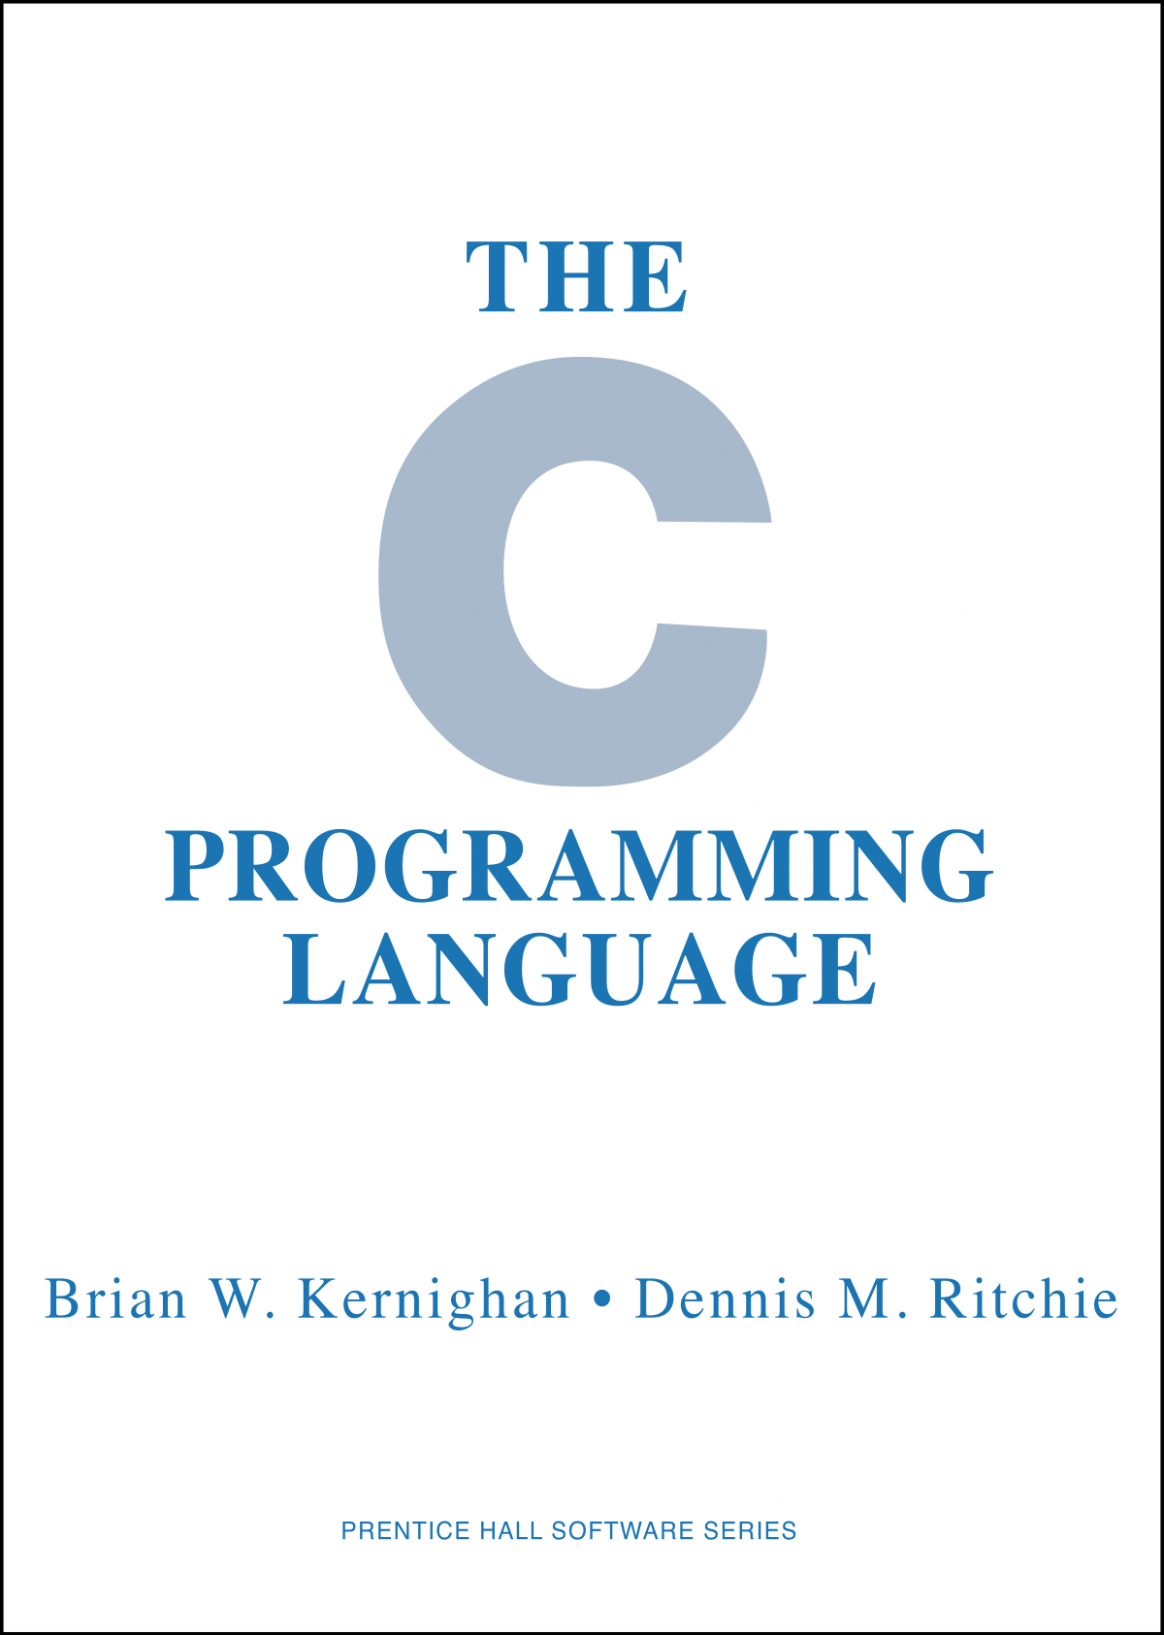 the c programming language wikipedia c&a mode für mollige kinder